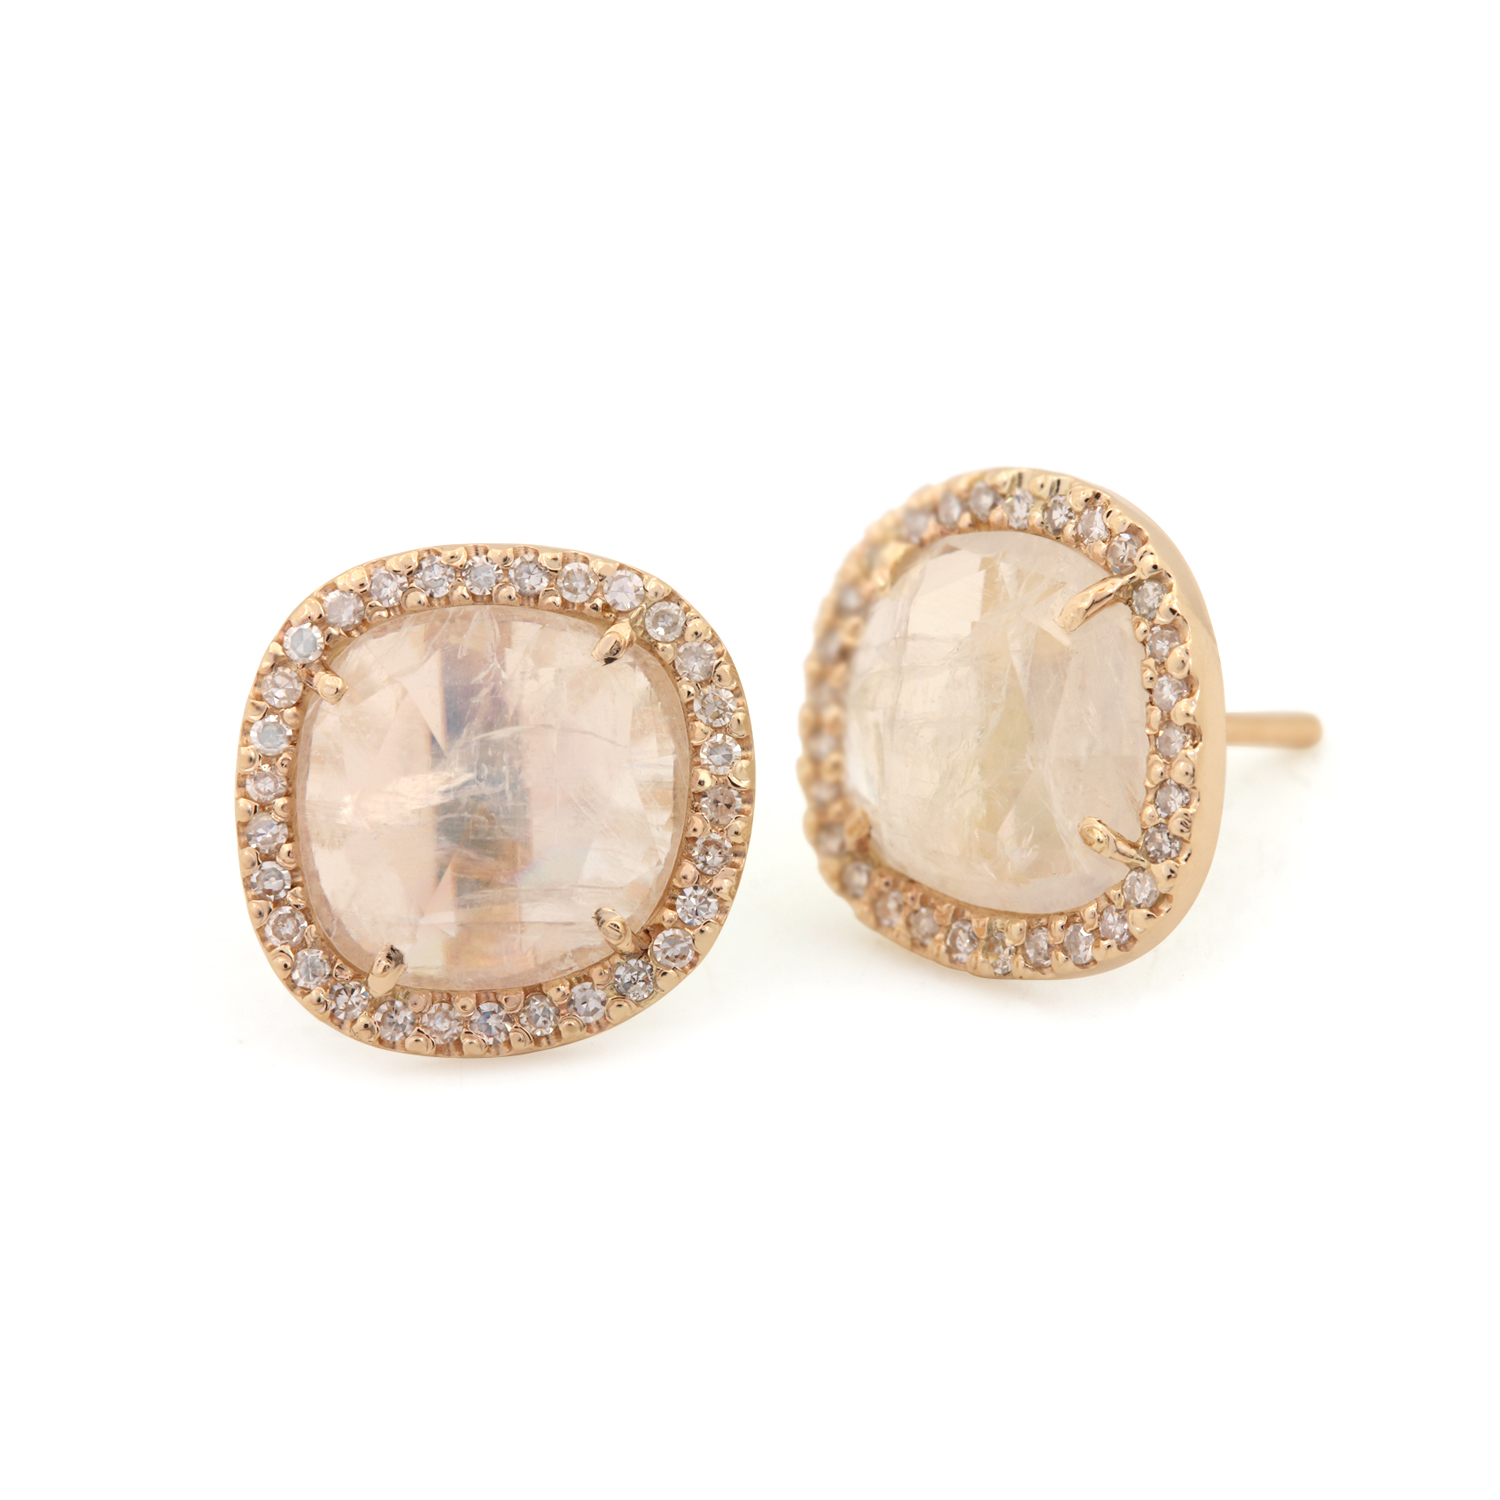 14k Solid Yellow Gold Fine Jewelry 0.25 Carat Natural Pave Diamond Moonstone Dangle Earrings For Women